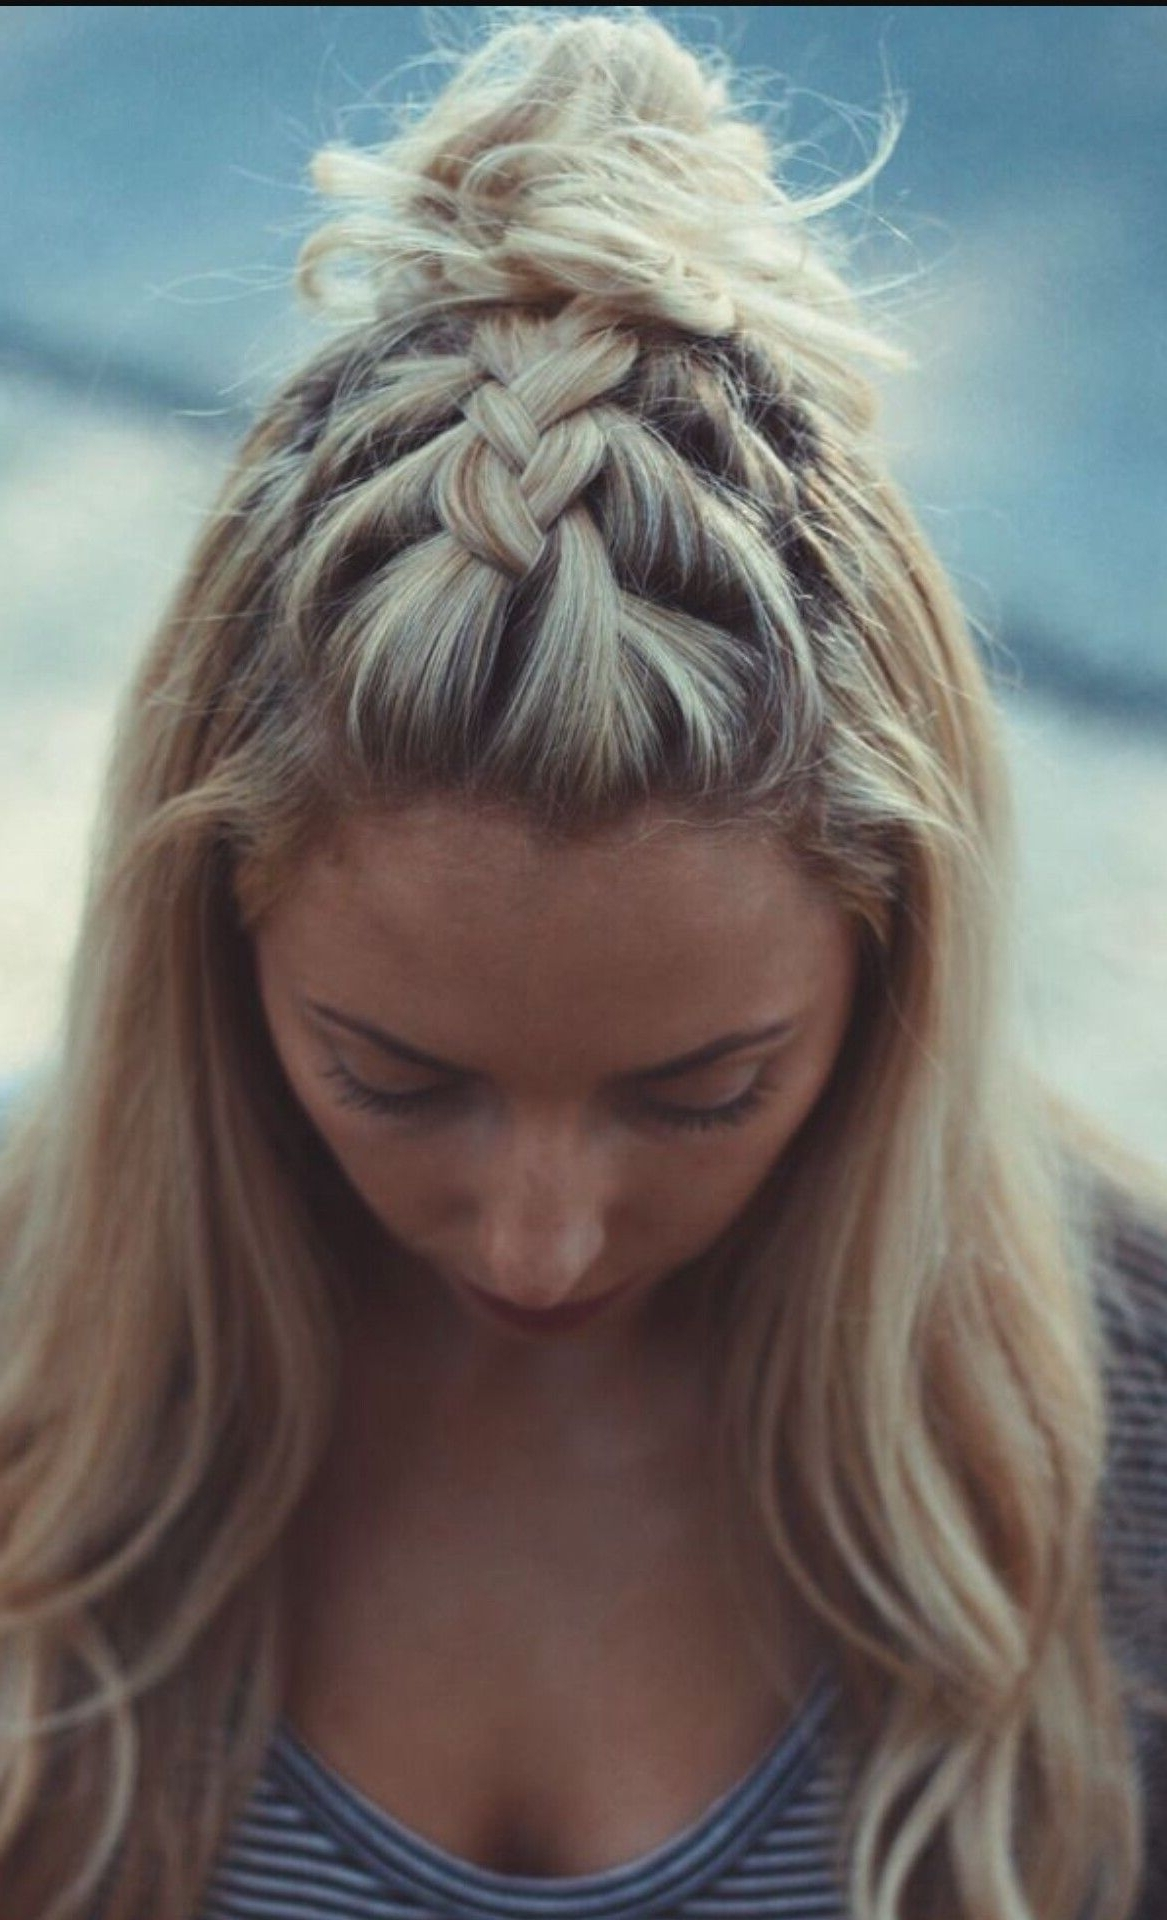 This Is Just A French Braid On Top Of The Head! Http://rnbjunkiex For Fashionable Braided Hairstyles On Top Of Head (View 14 of 15)